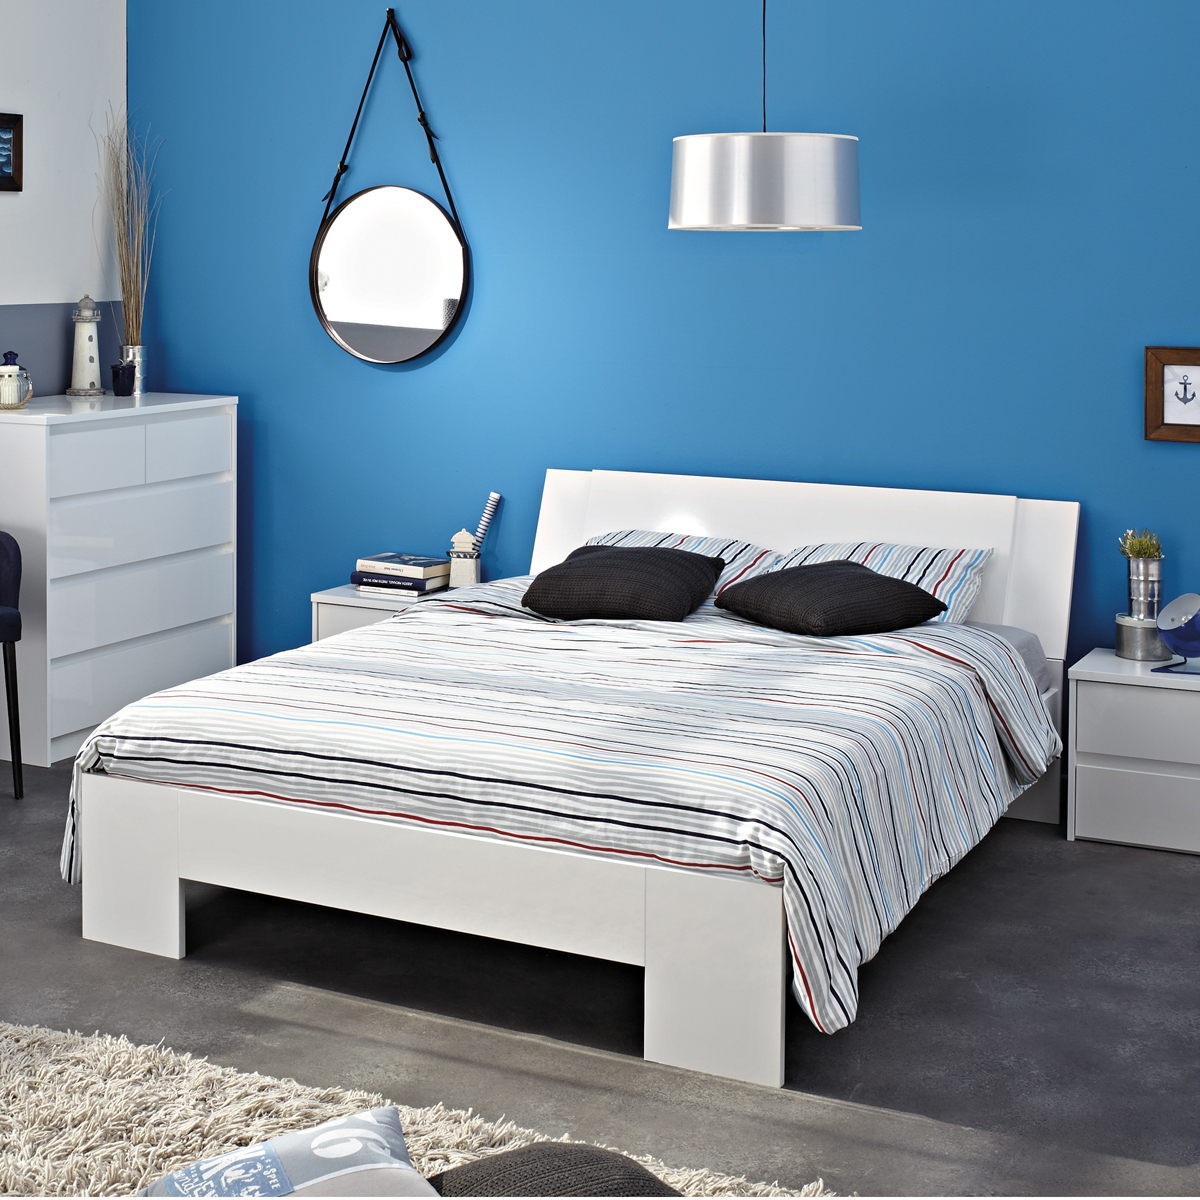 bett ontario 5 wei hochglanz 140x200 jugendbett schlafzimmerbett kinderbett ebay. Black Bedroom Furniture Sets. Home Design Ideas